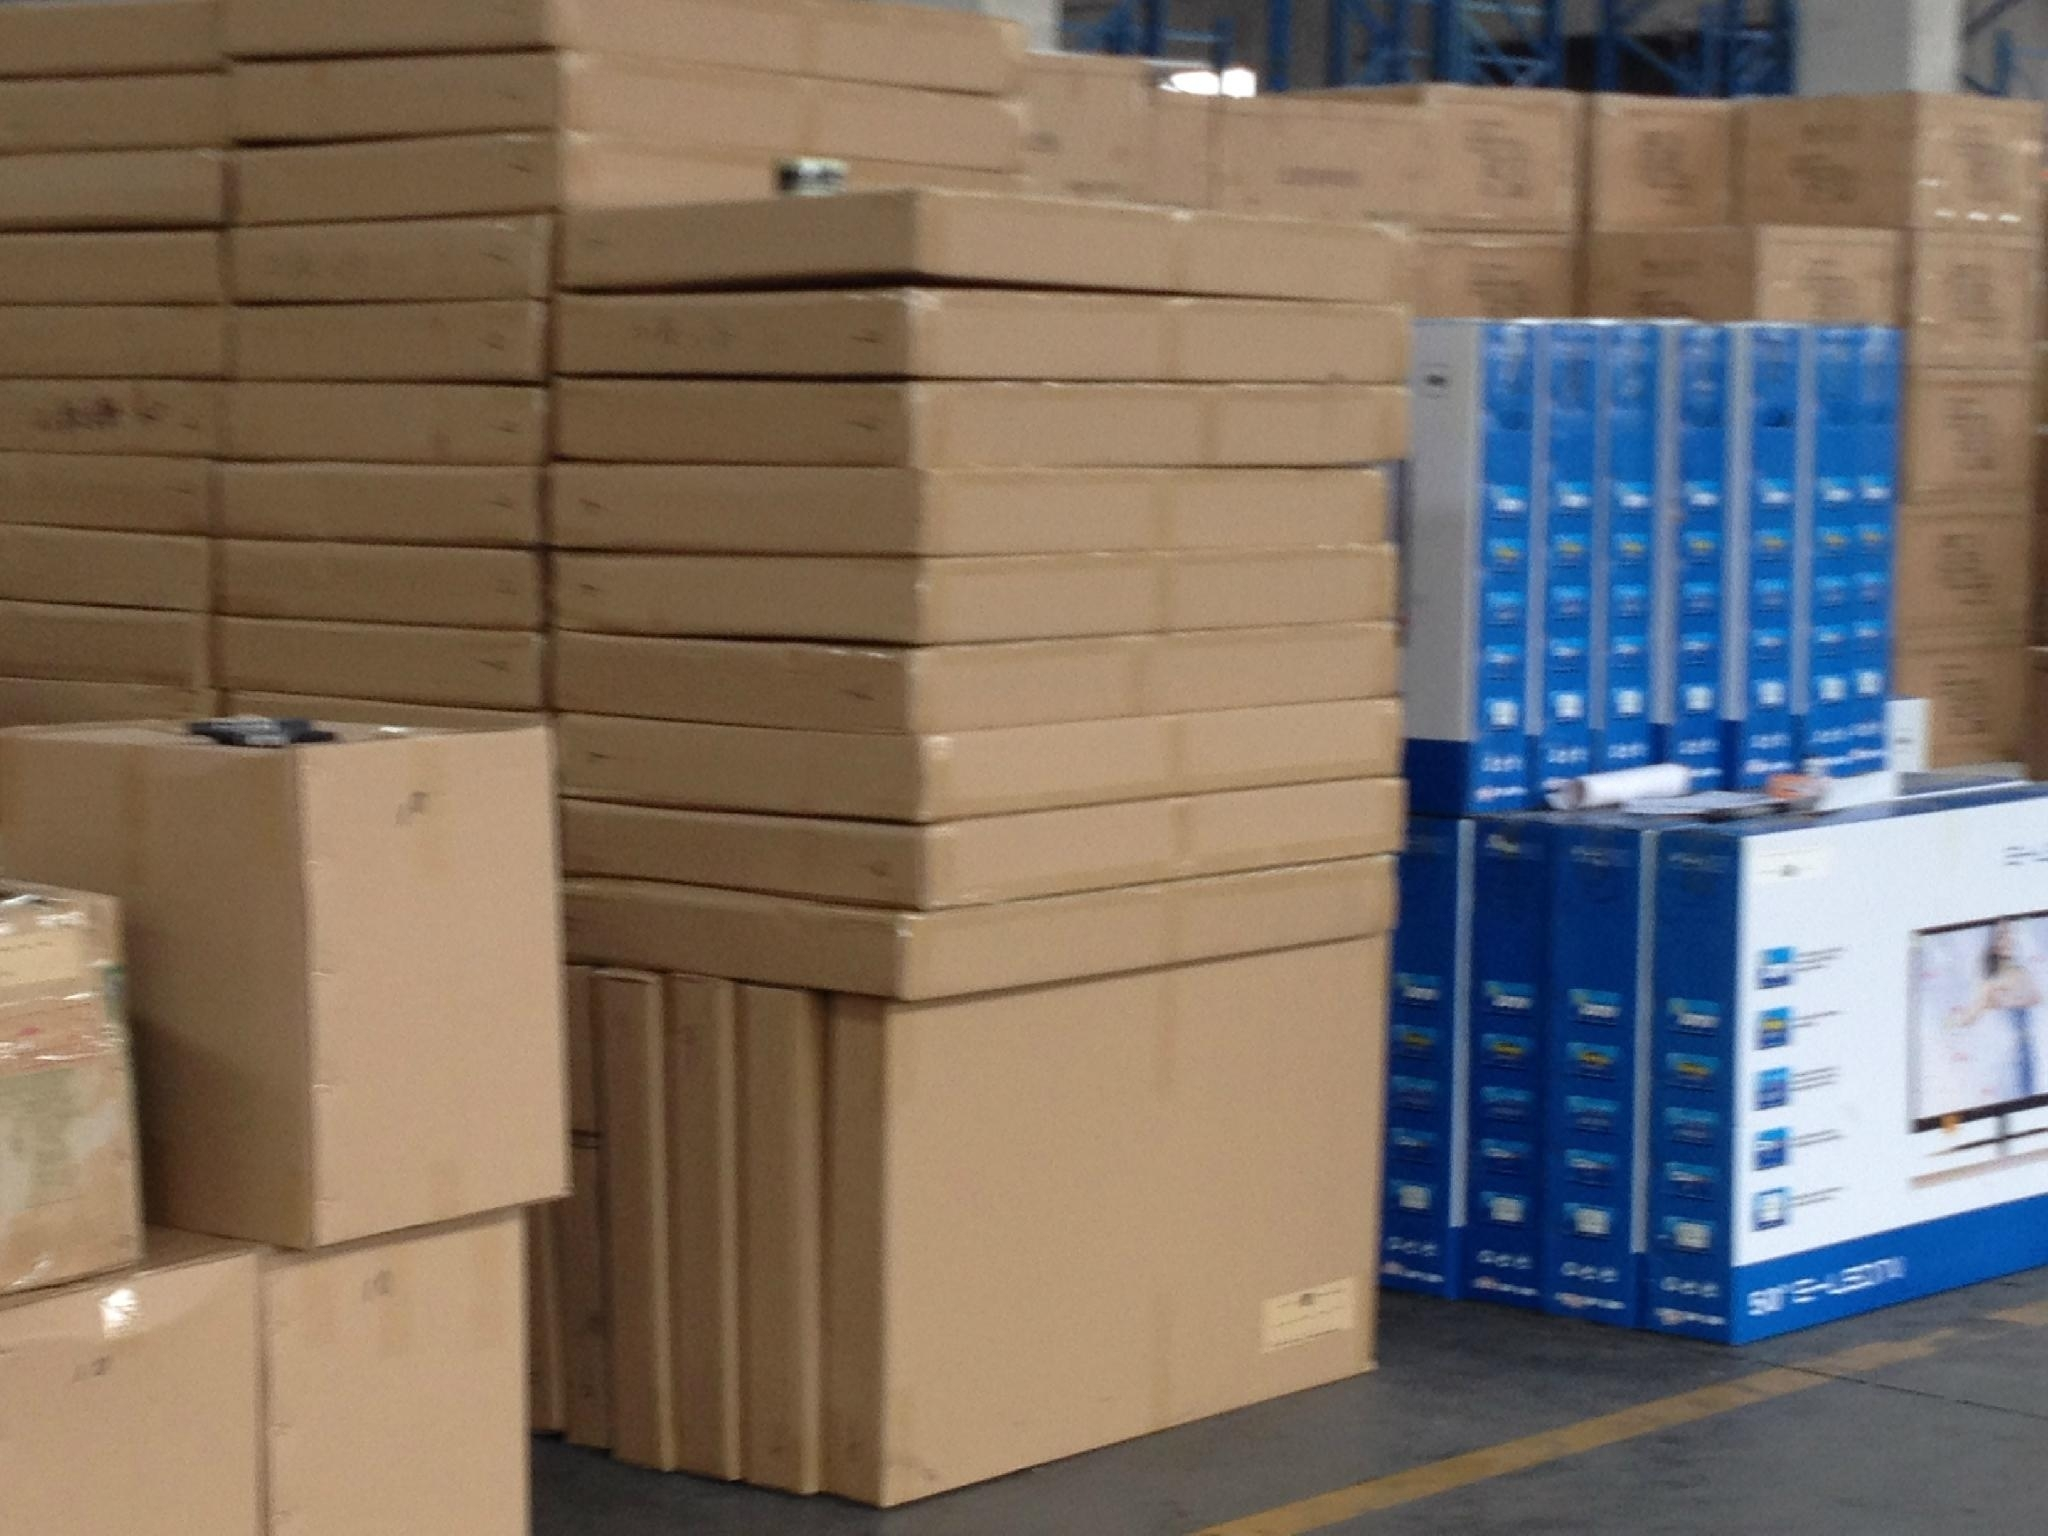 Goods into the dock and warehouse, waiting for equipment cabinets